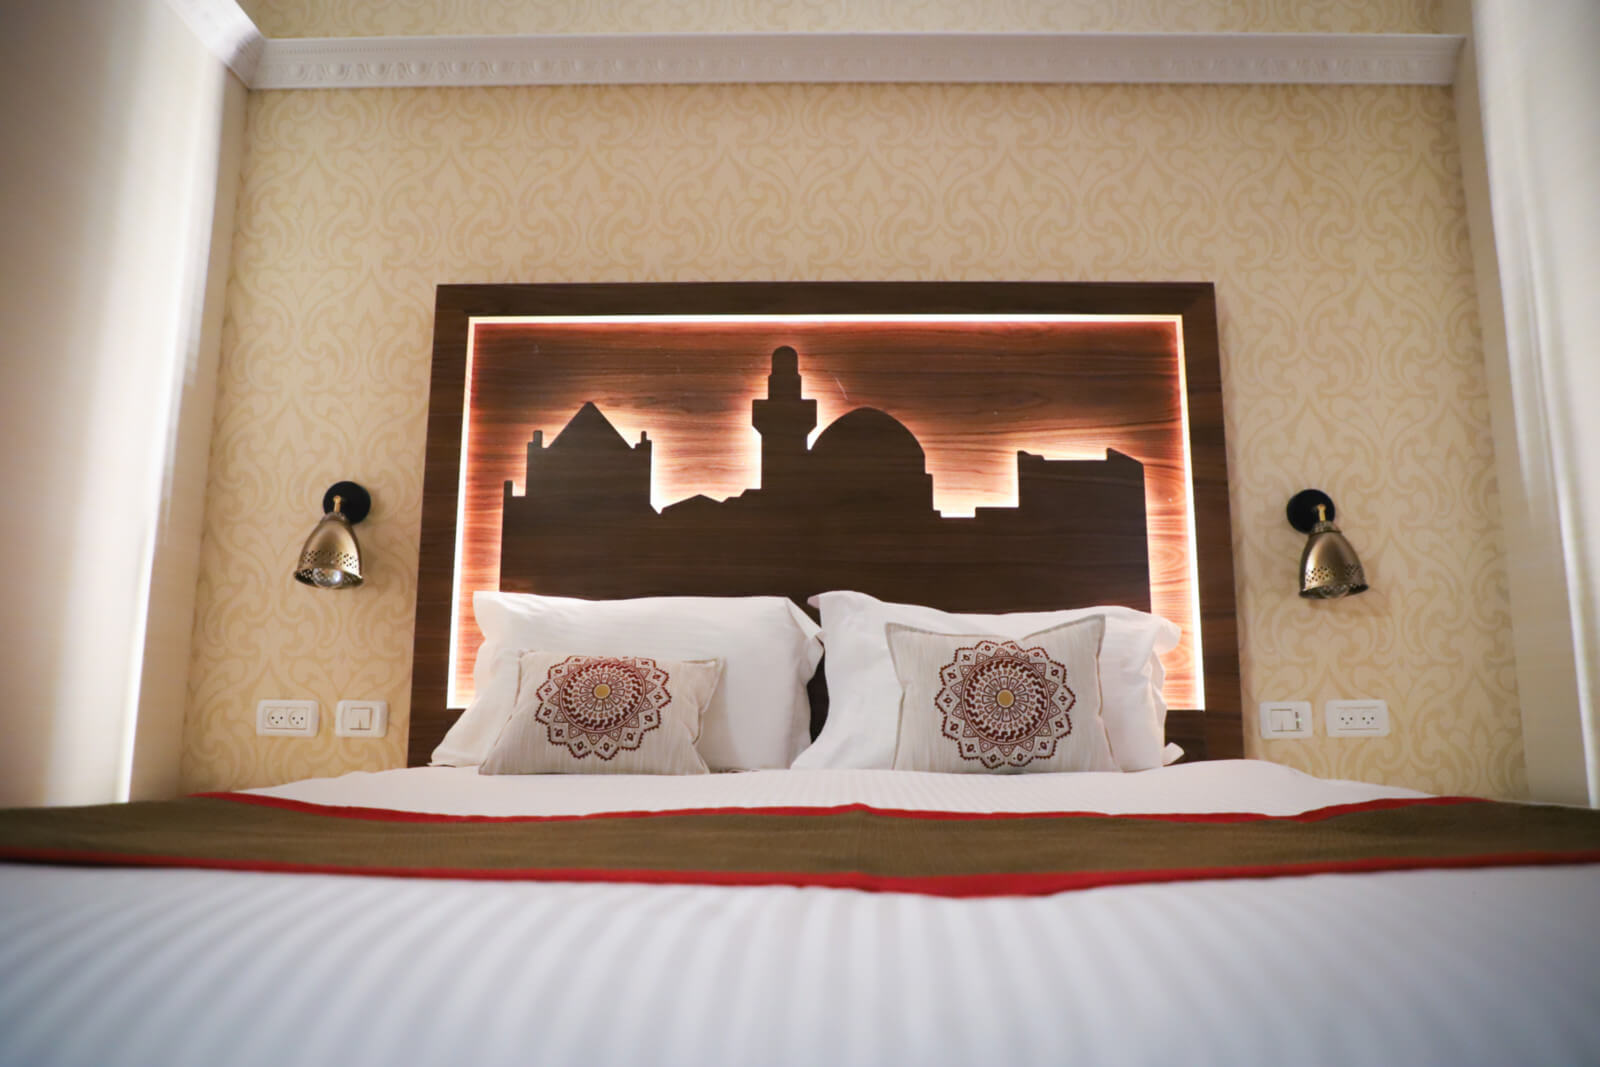 Hotels in Jerusalem near Old City - the place to be